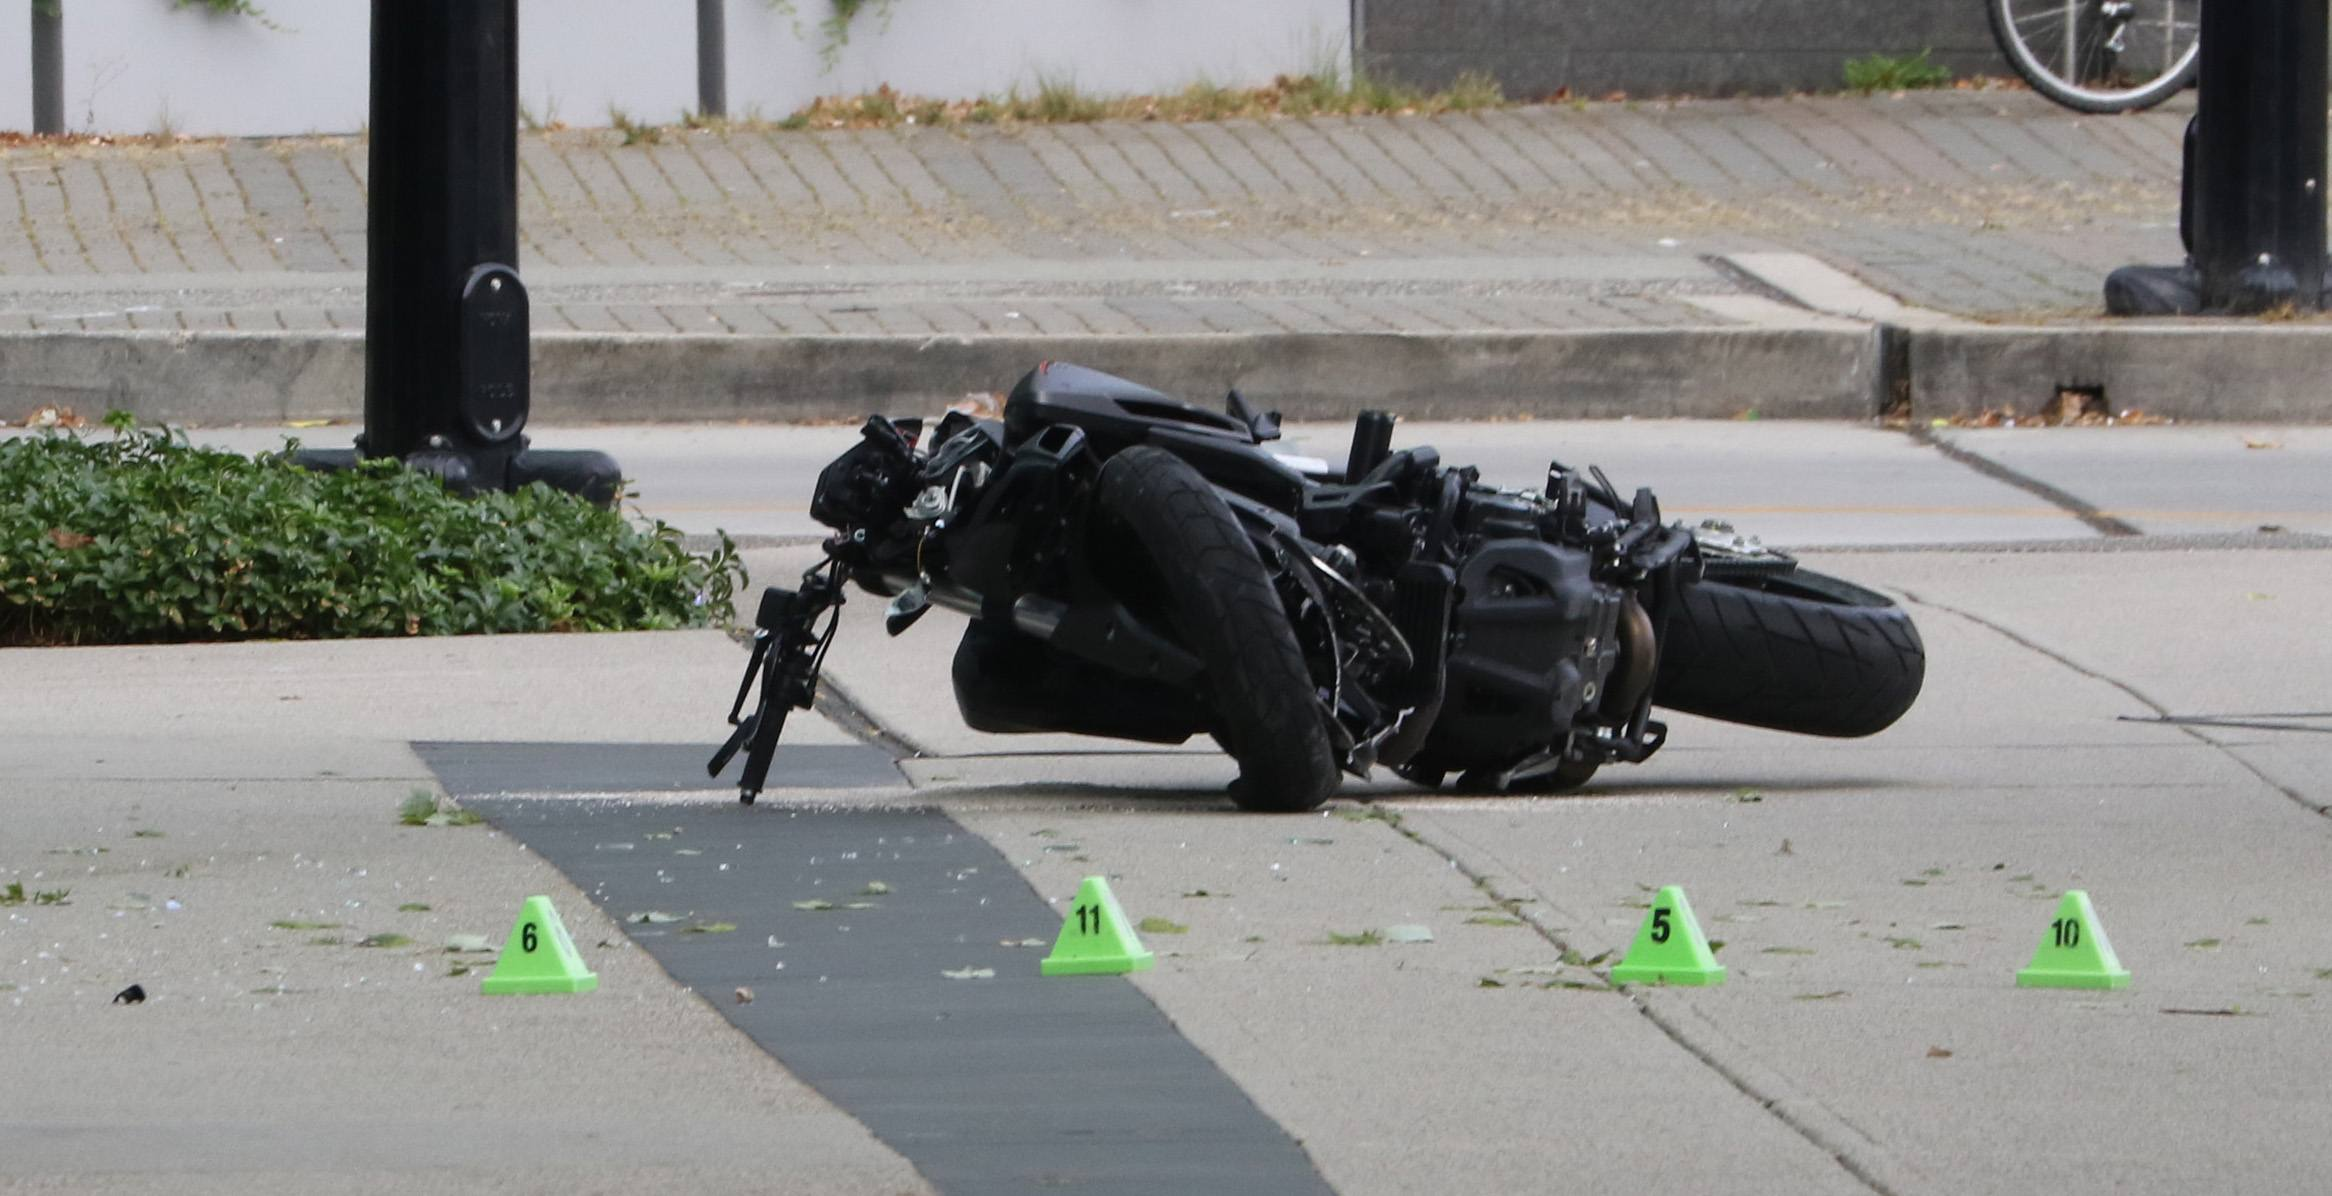 The crashed motorcycle on the set of Deadpool 2 on Monday morning (Daily Hive)